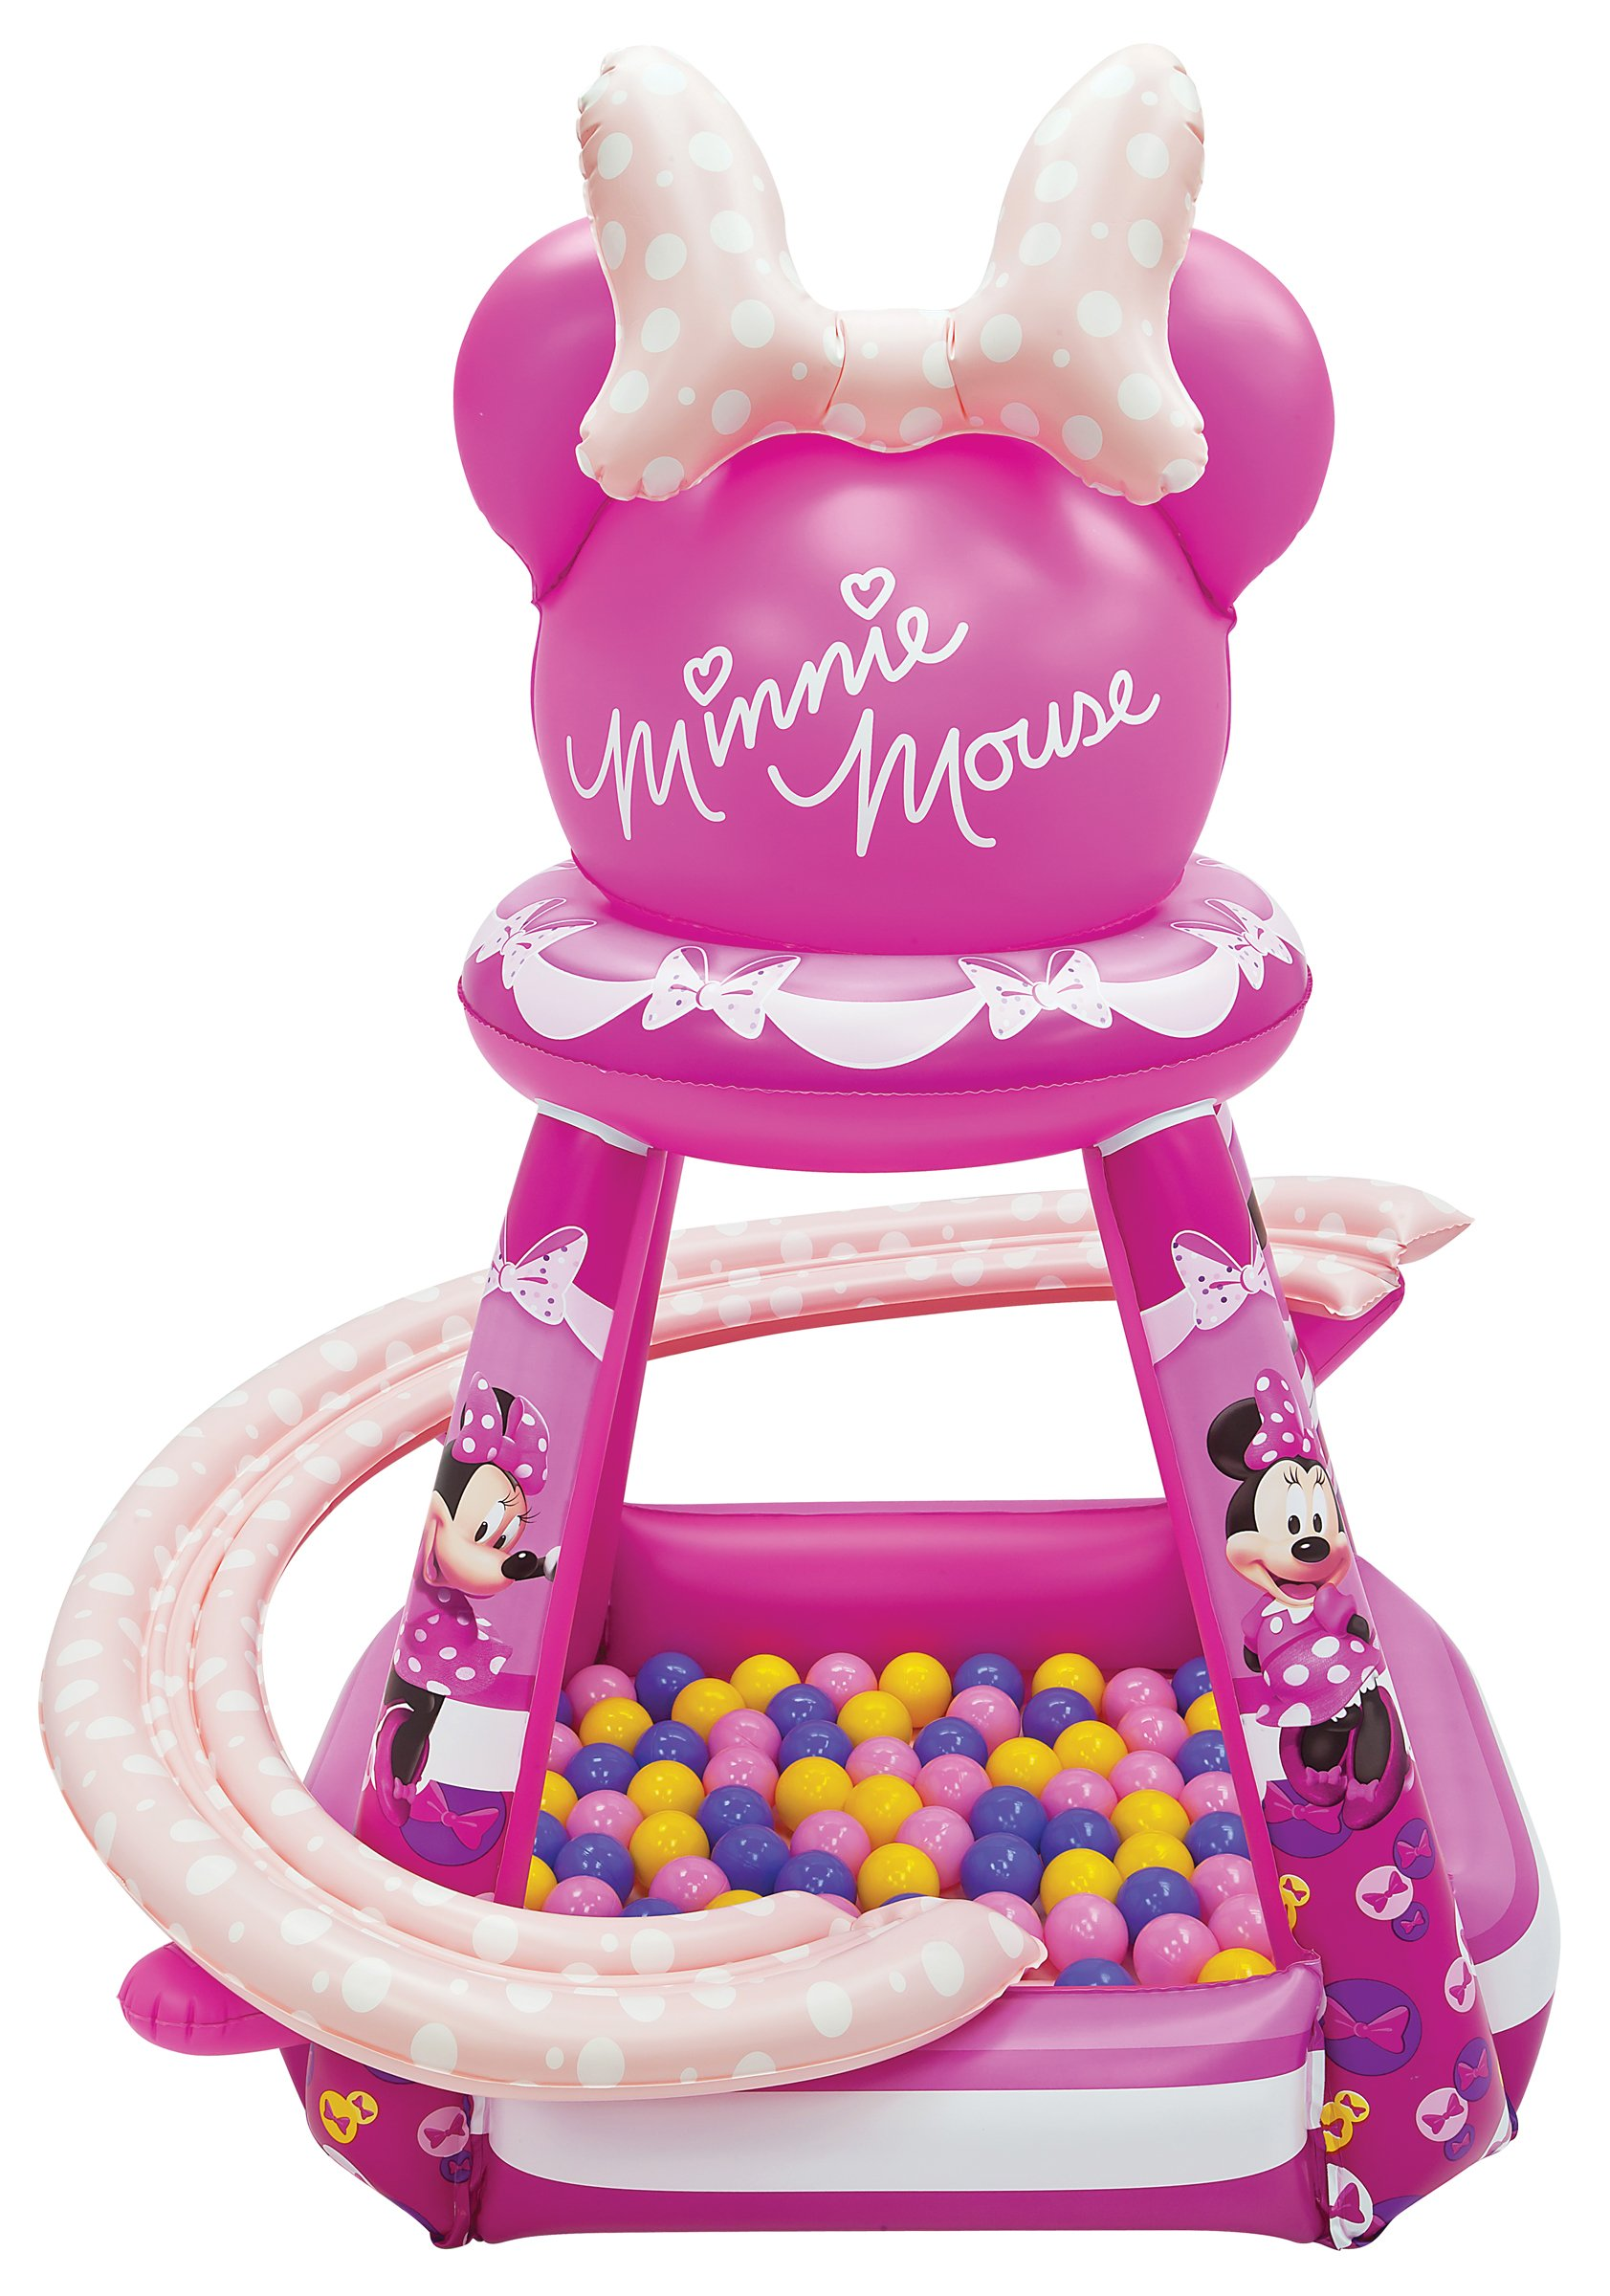 Minnie Mouse Buttons and Bows Ball Pit, 1 Inflatable & 50 Sof-Flex Balls, Pink, 43'' W x 43'' D x 38'' H